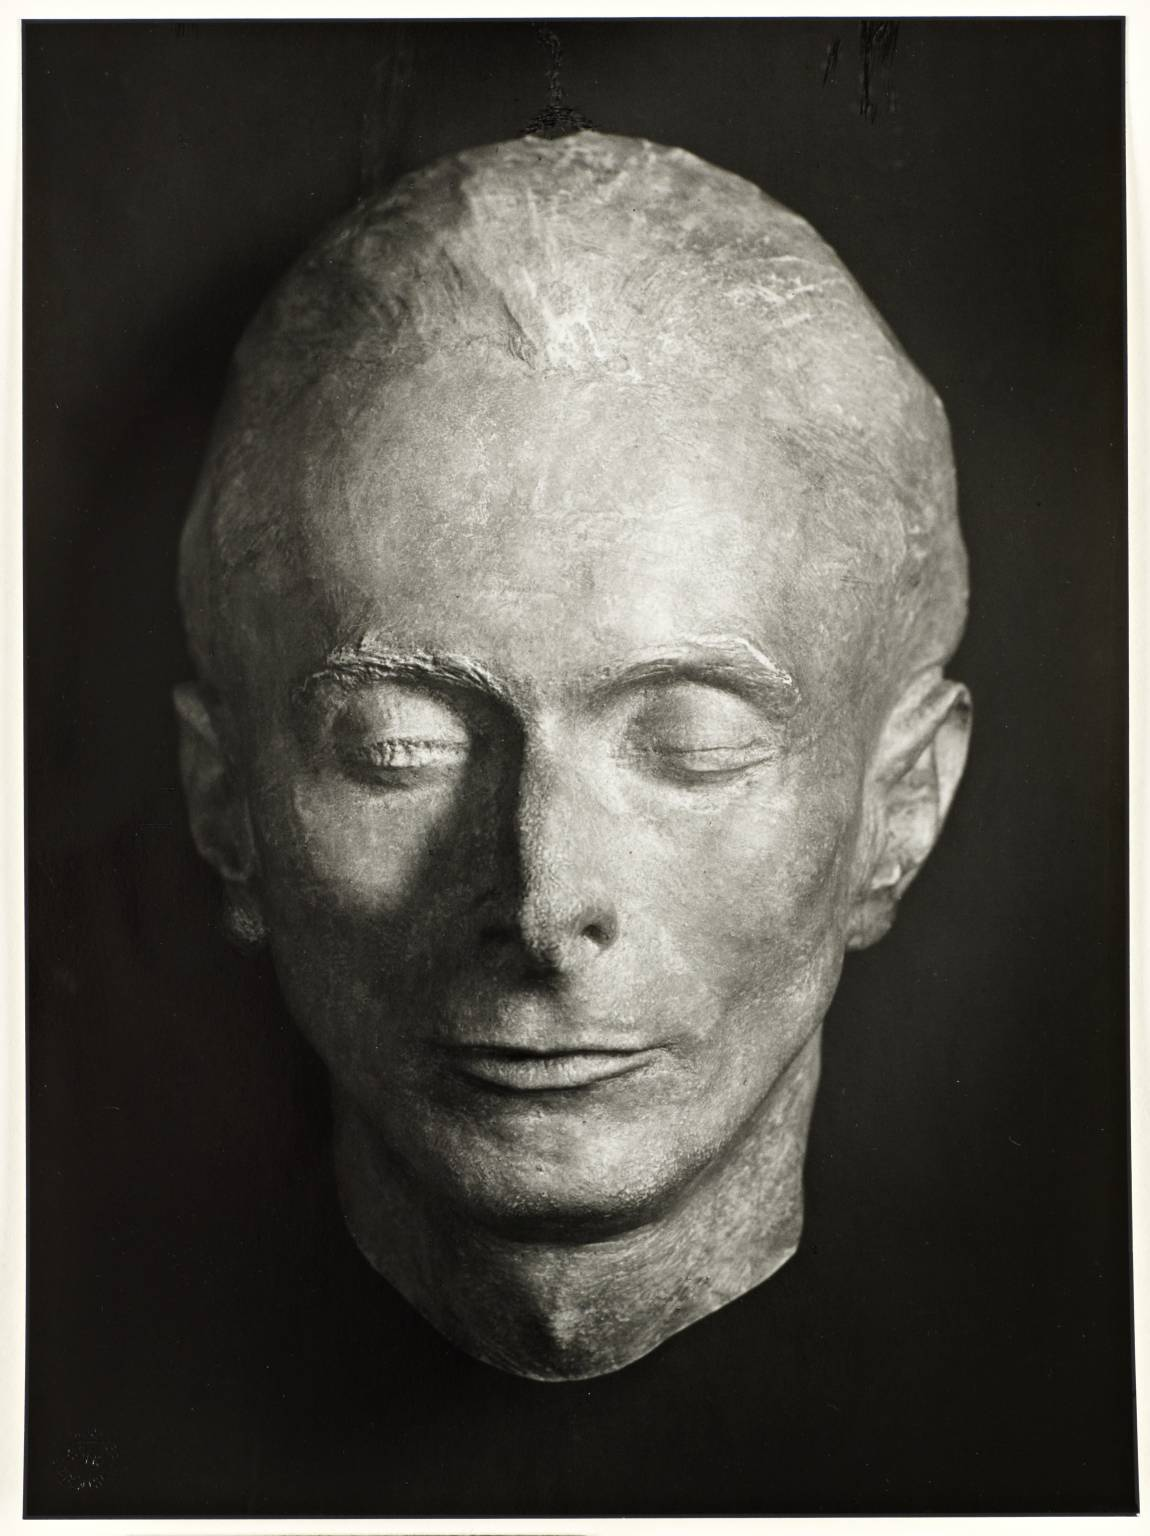 Death Mask of Erich Sander by August Sander